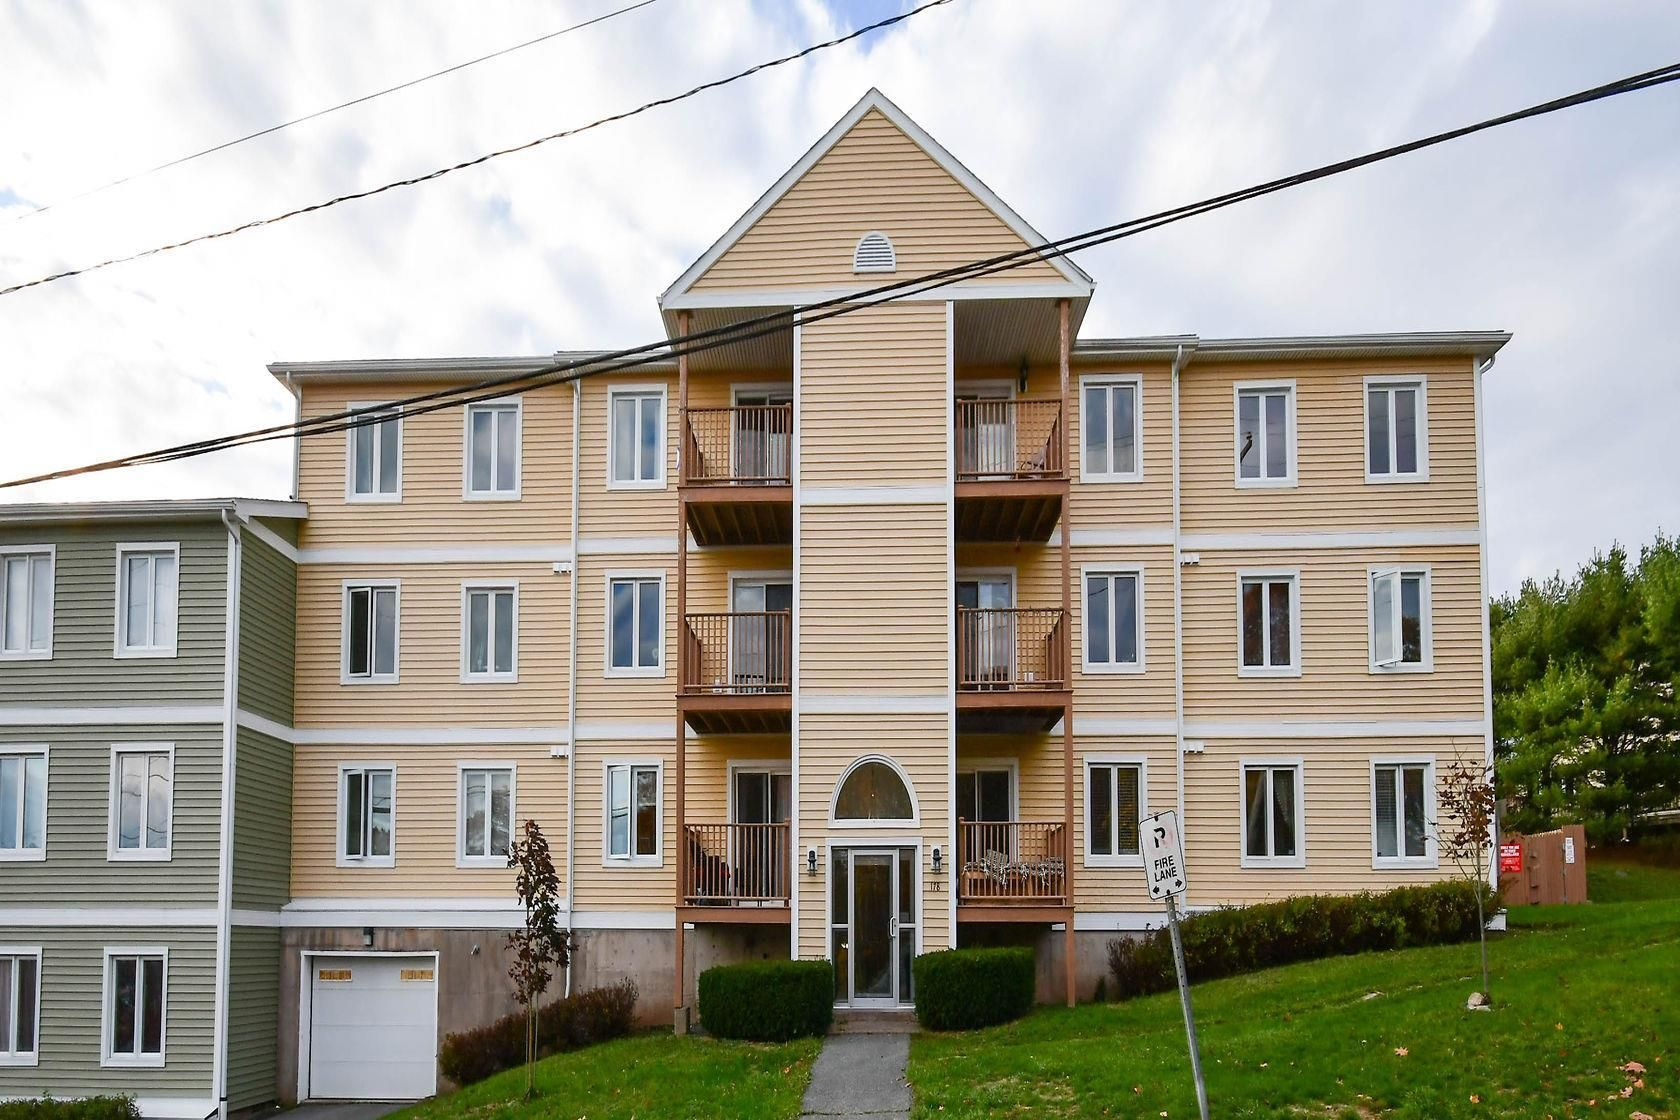 Main Photo: 303 178 Rutledge Street in Bedford: 20-Bedford Residential for sale (Halifax-Dartmouth)  : MLS®# 202117370